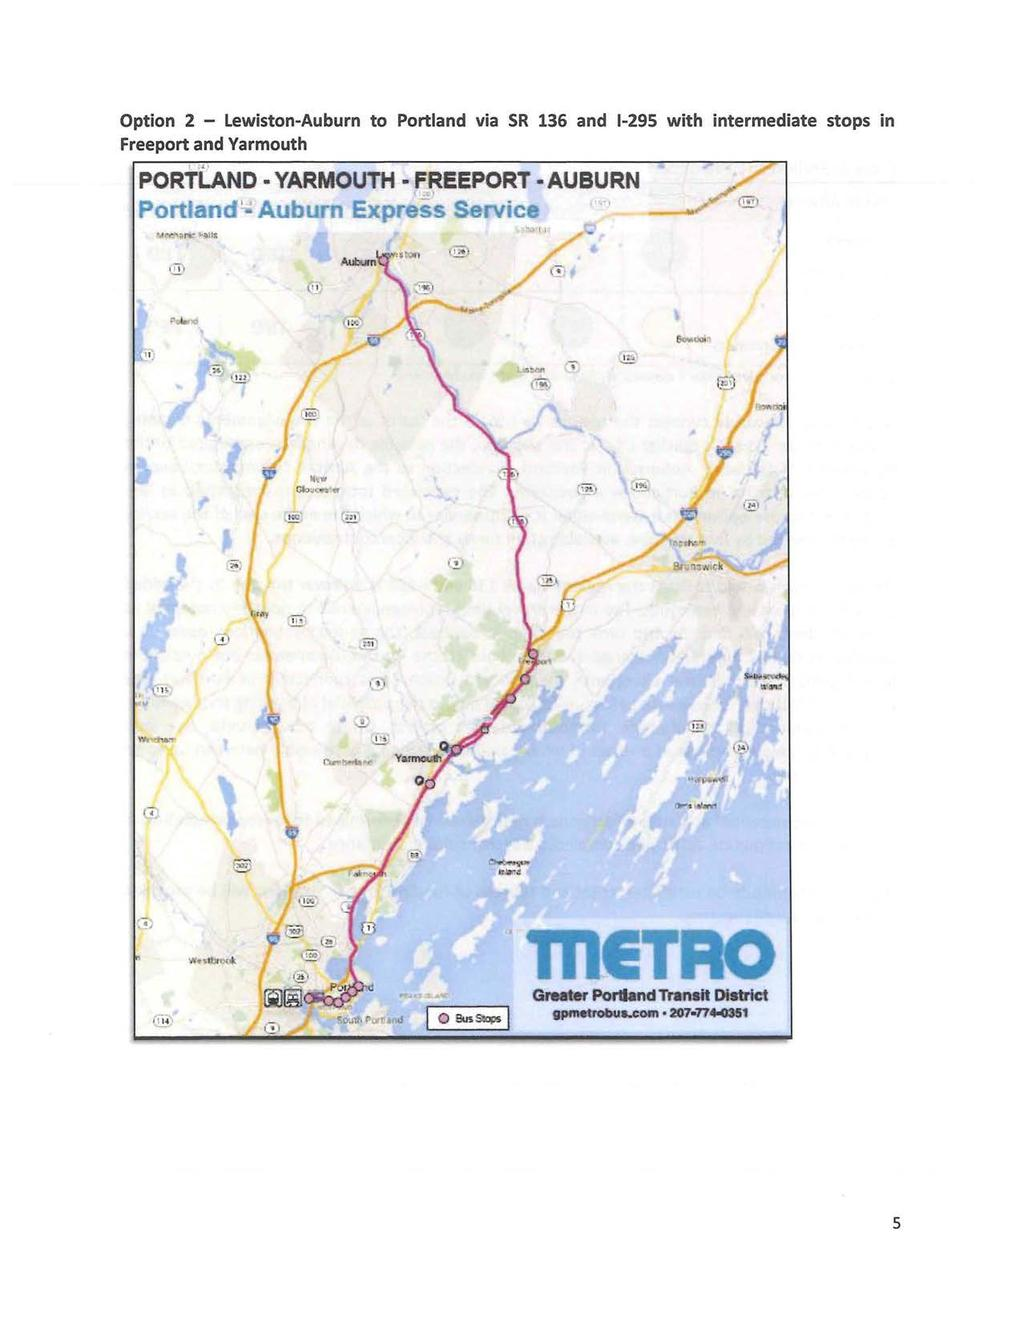 Option 2 - Lewiston-Auburn to Portland via SR 136 and 1-295 with intermediate stops in Freeport and Yarmouth I.